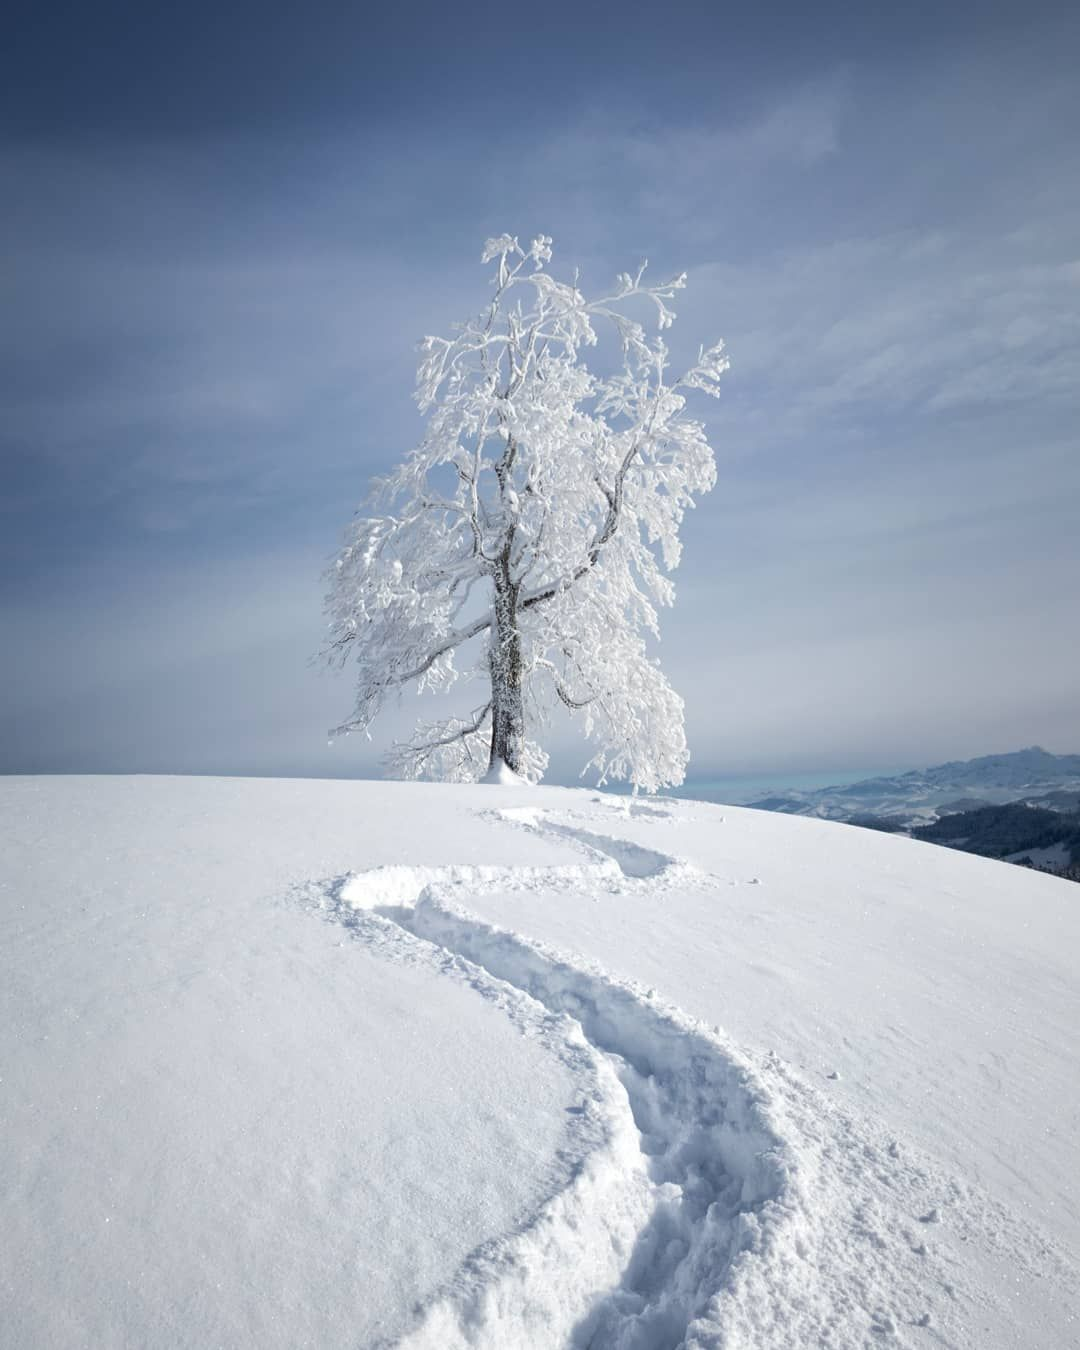 Trail In The Snow Switzerland By Sinu Sinhue Boksberger On I Mountain Landscape Photography Winter Landscape Photography Landscape Photography Nature